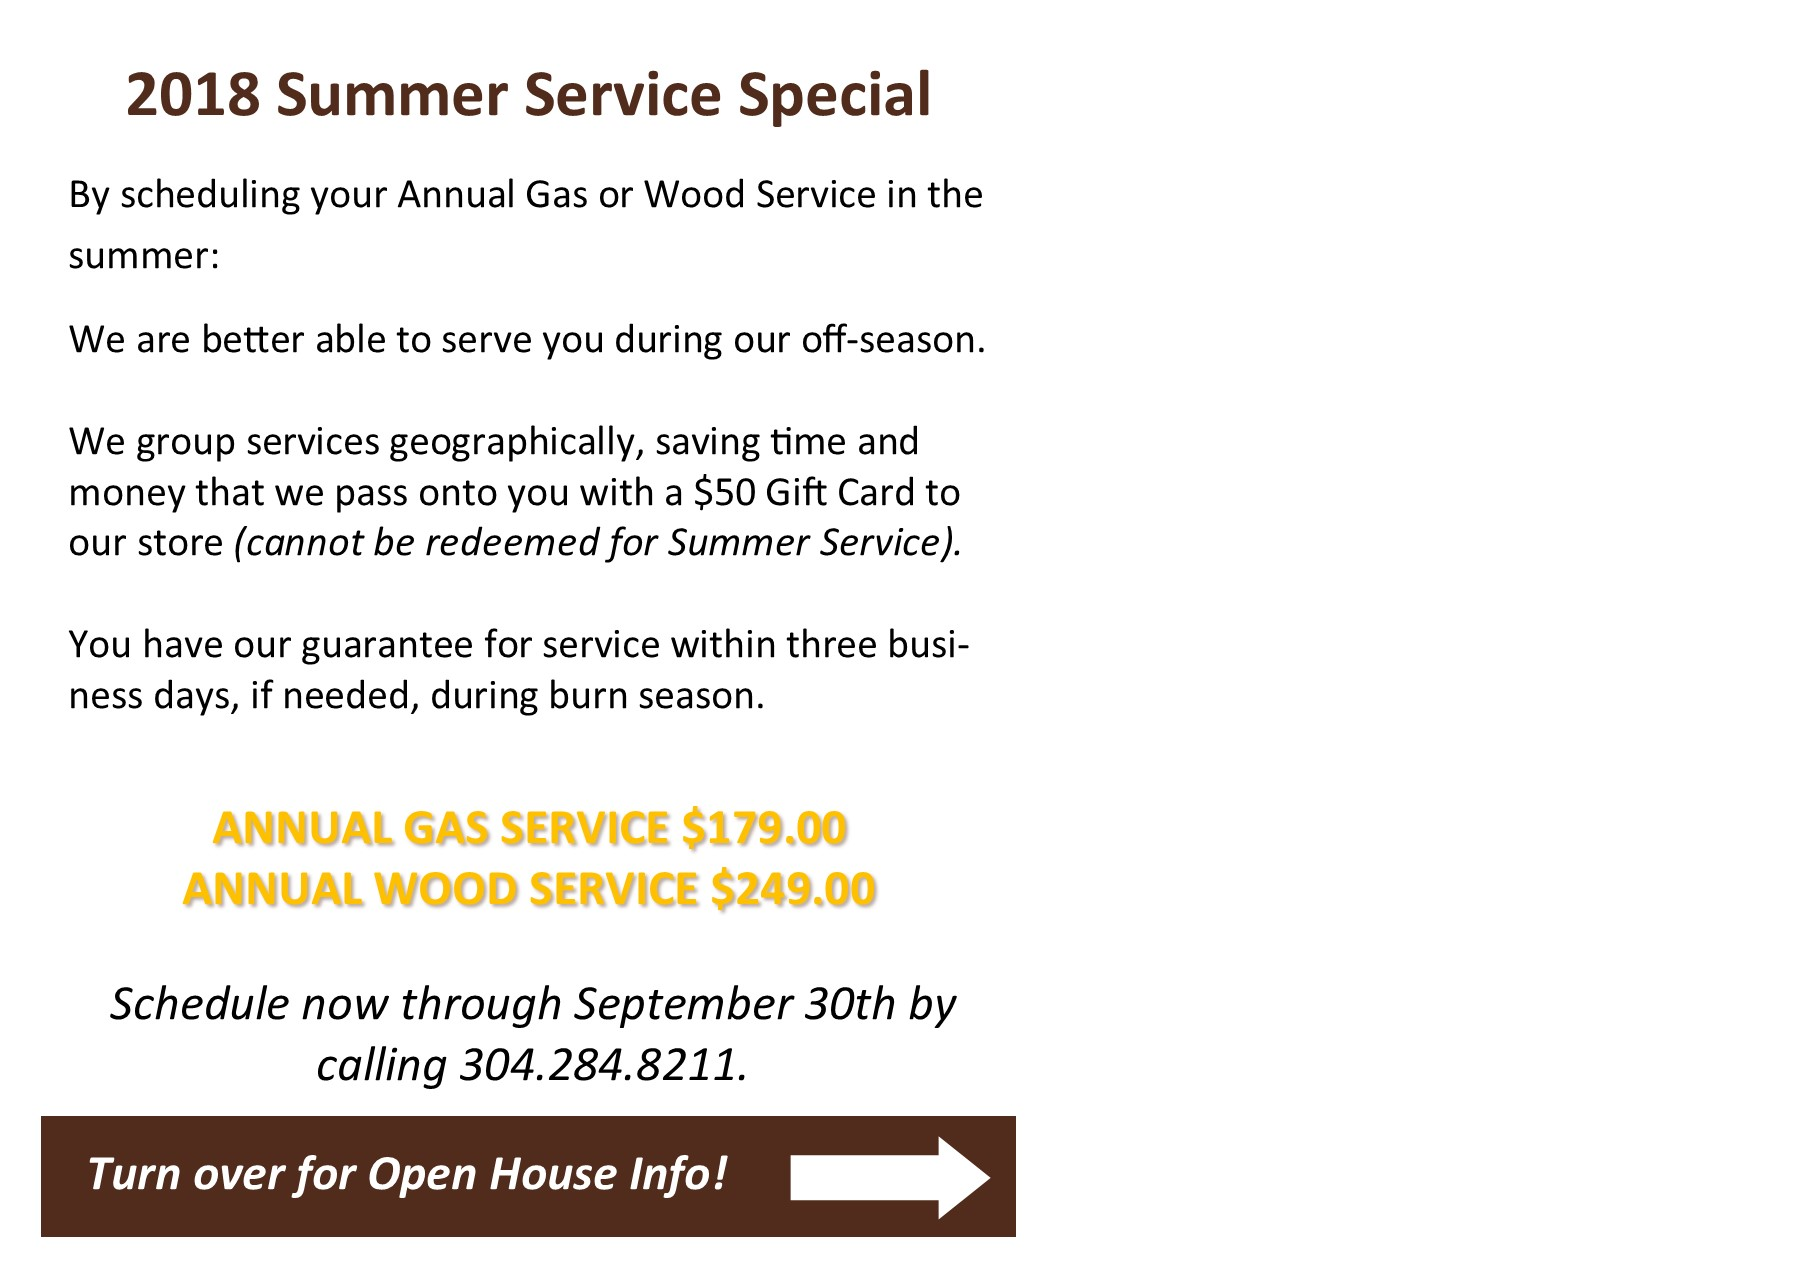 Summer Service Special - Image